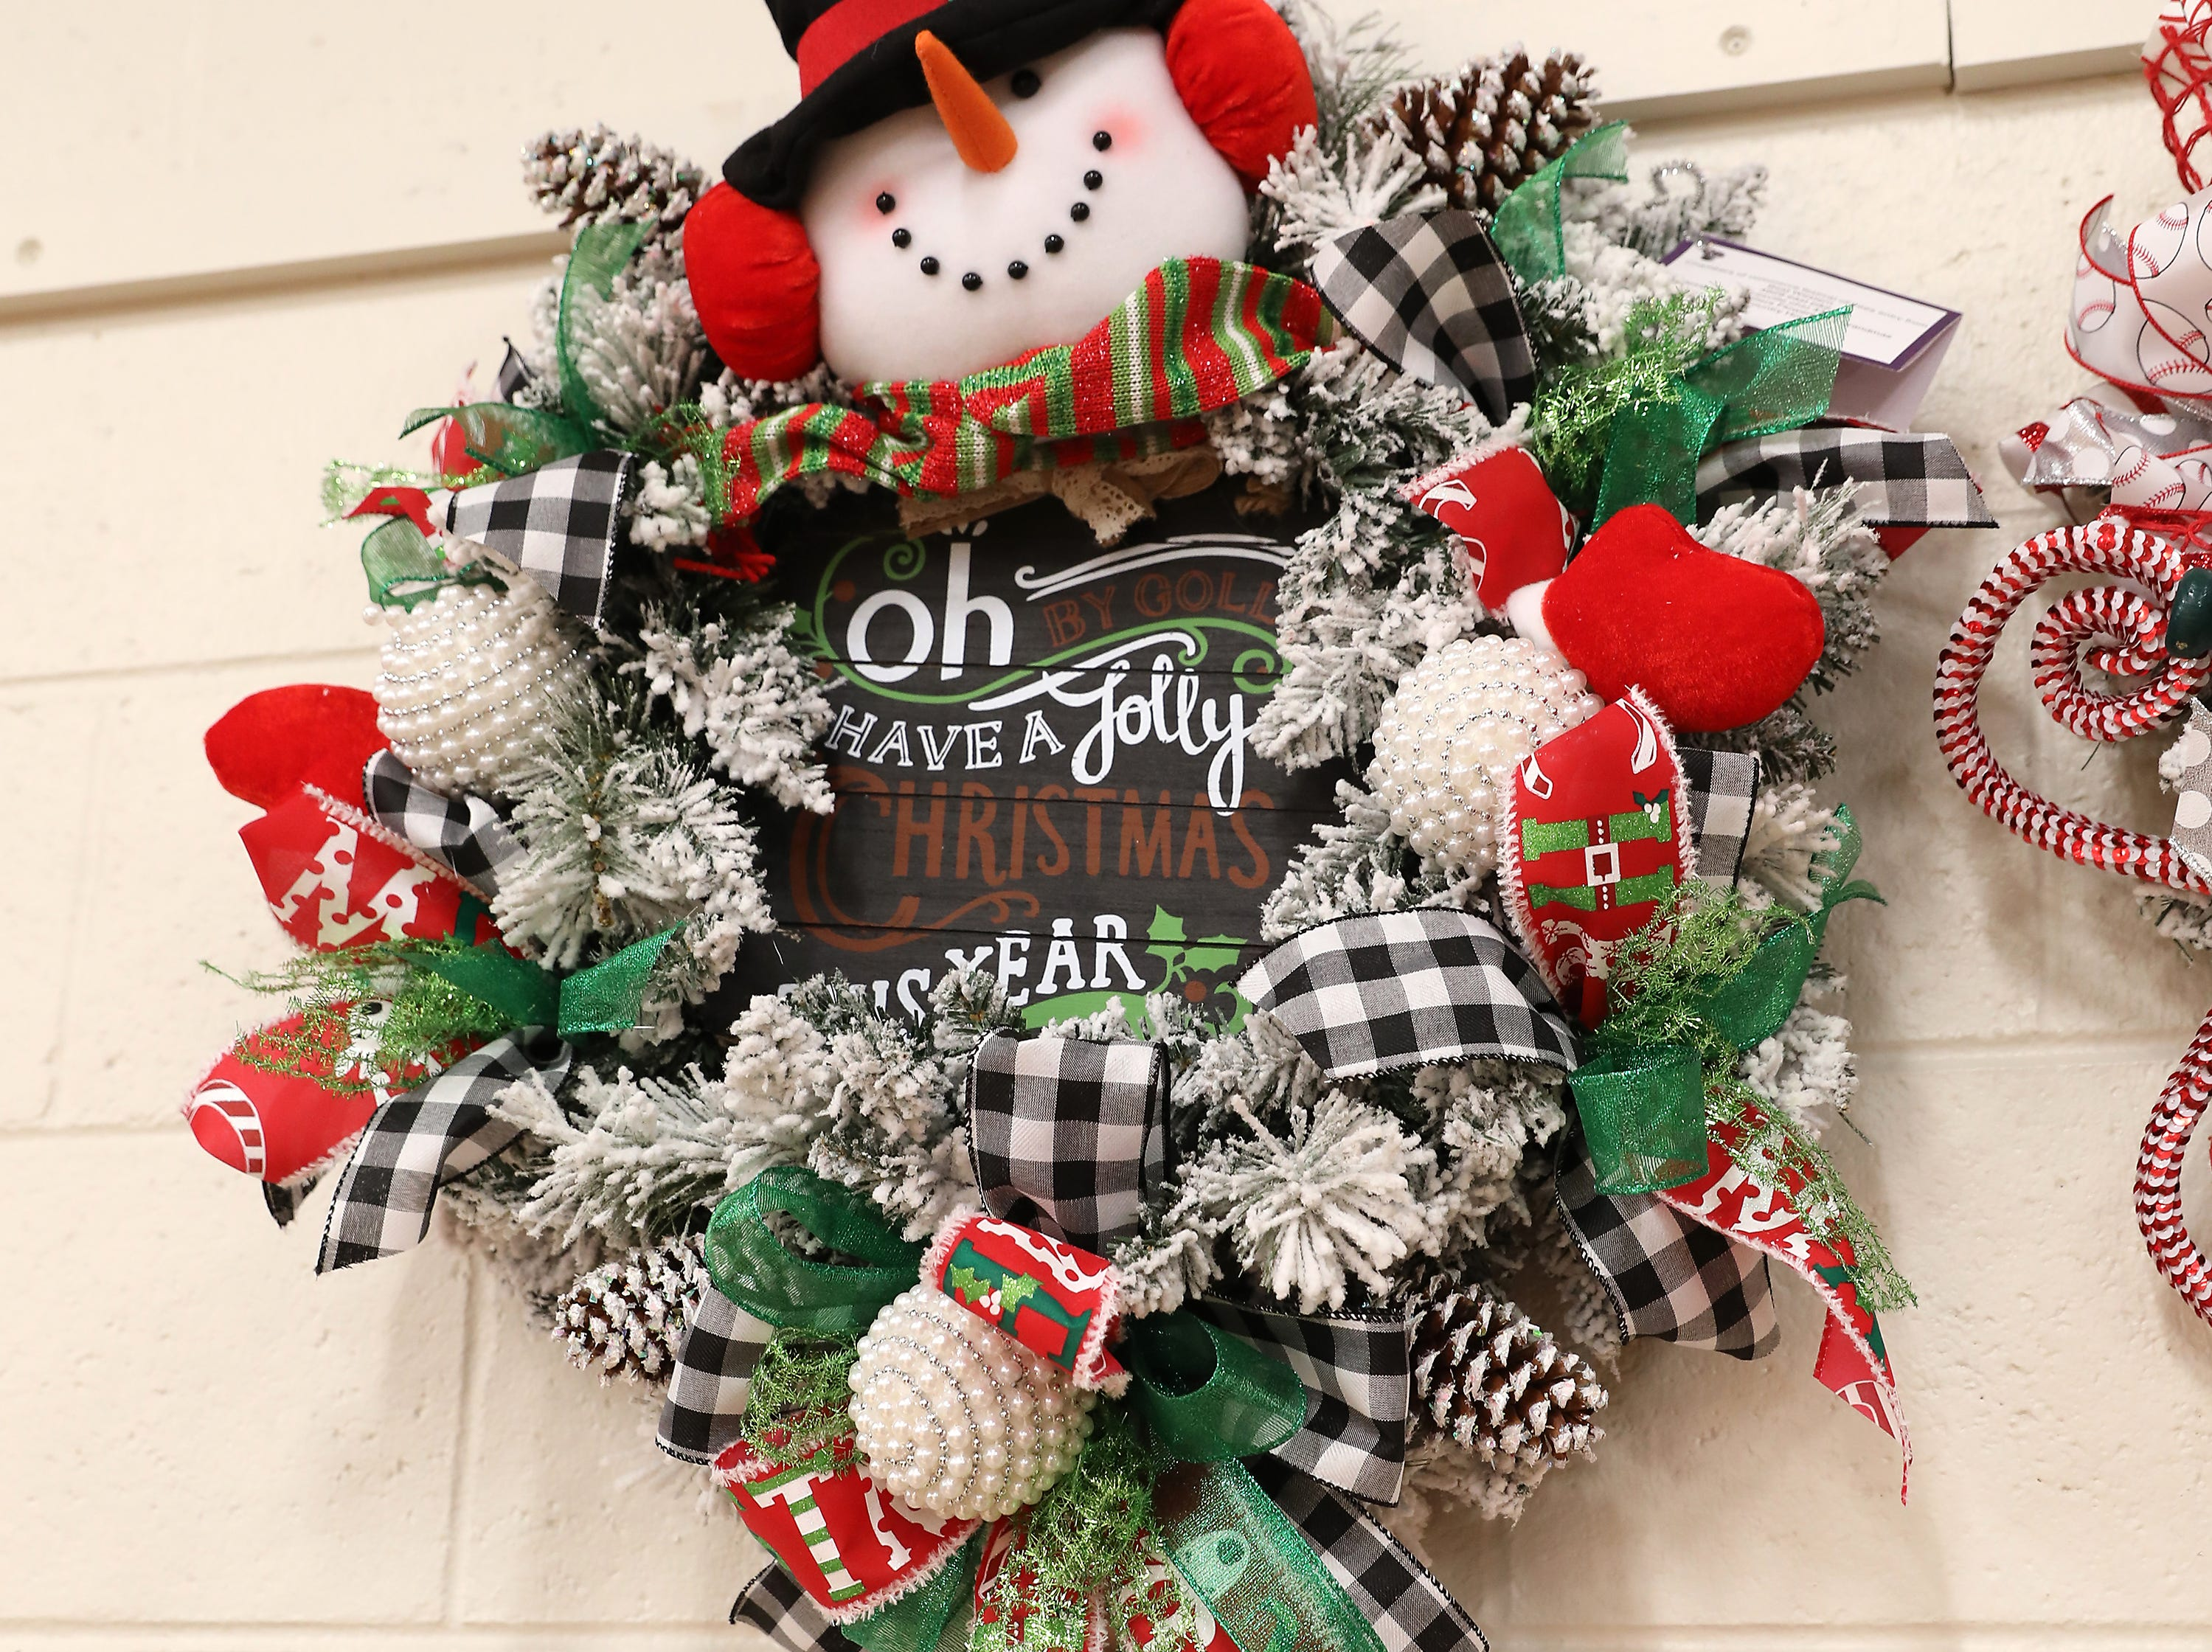 "43	10:30 AM	Best Western	Wreath	Have a Jolly Christmas	A white flock 22"" wreath decorated snowballs and snowmen with red and green accent ribbon.		1 night stay at Best Western of Zanesville"